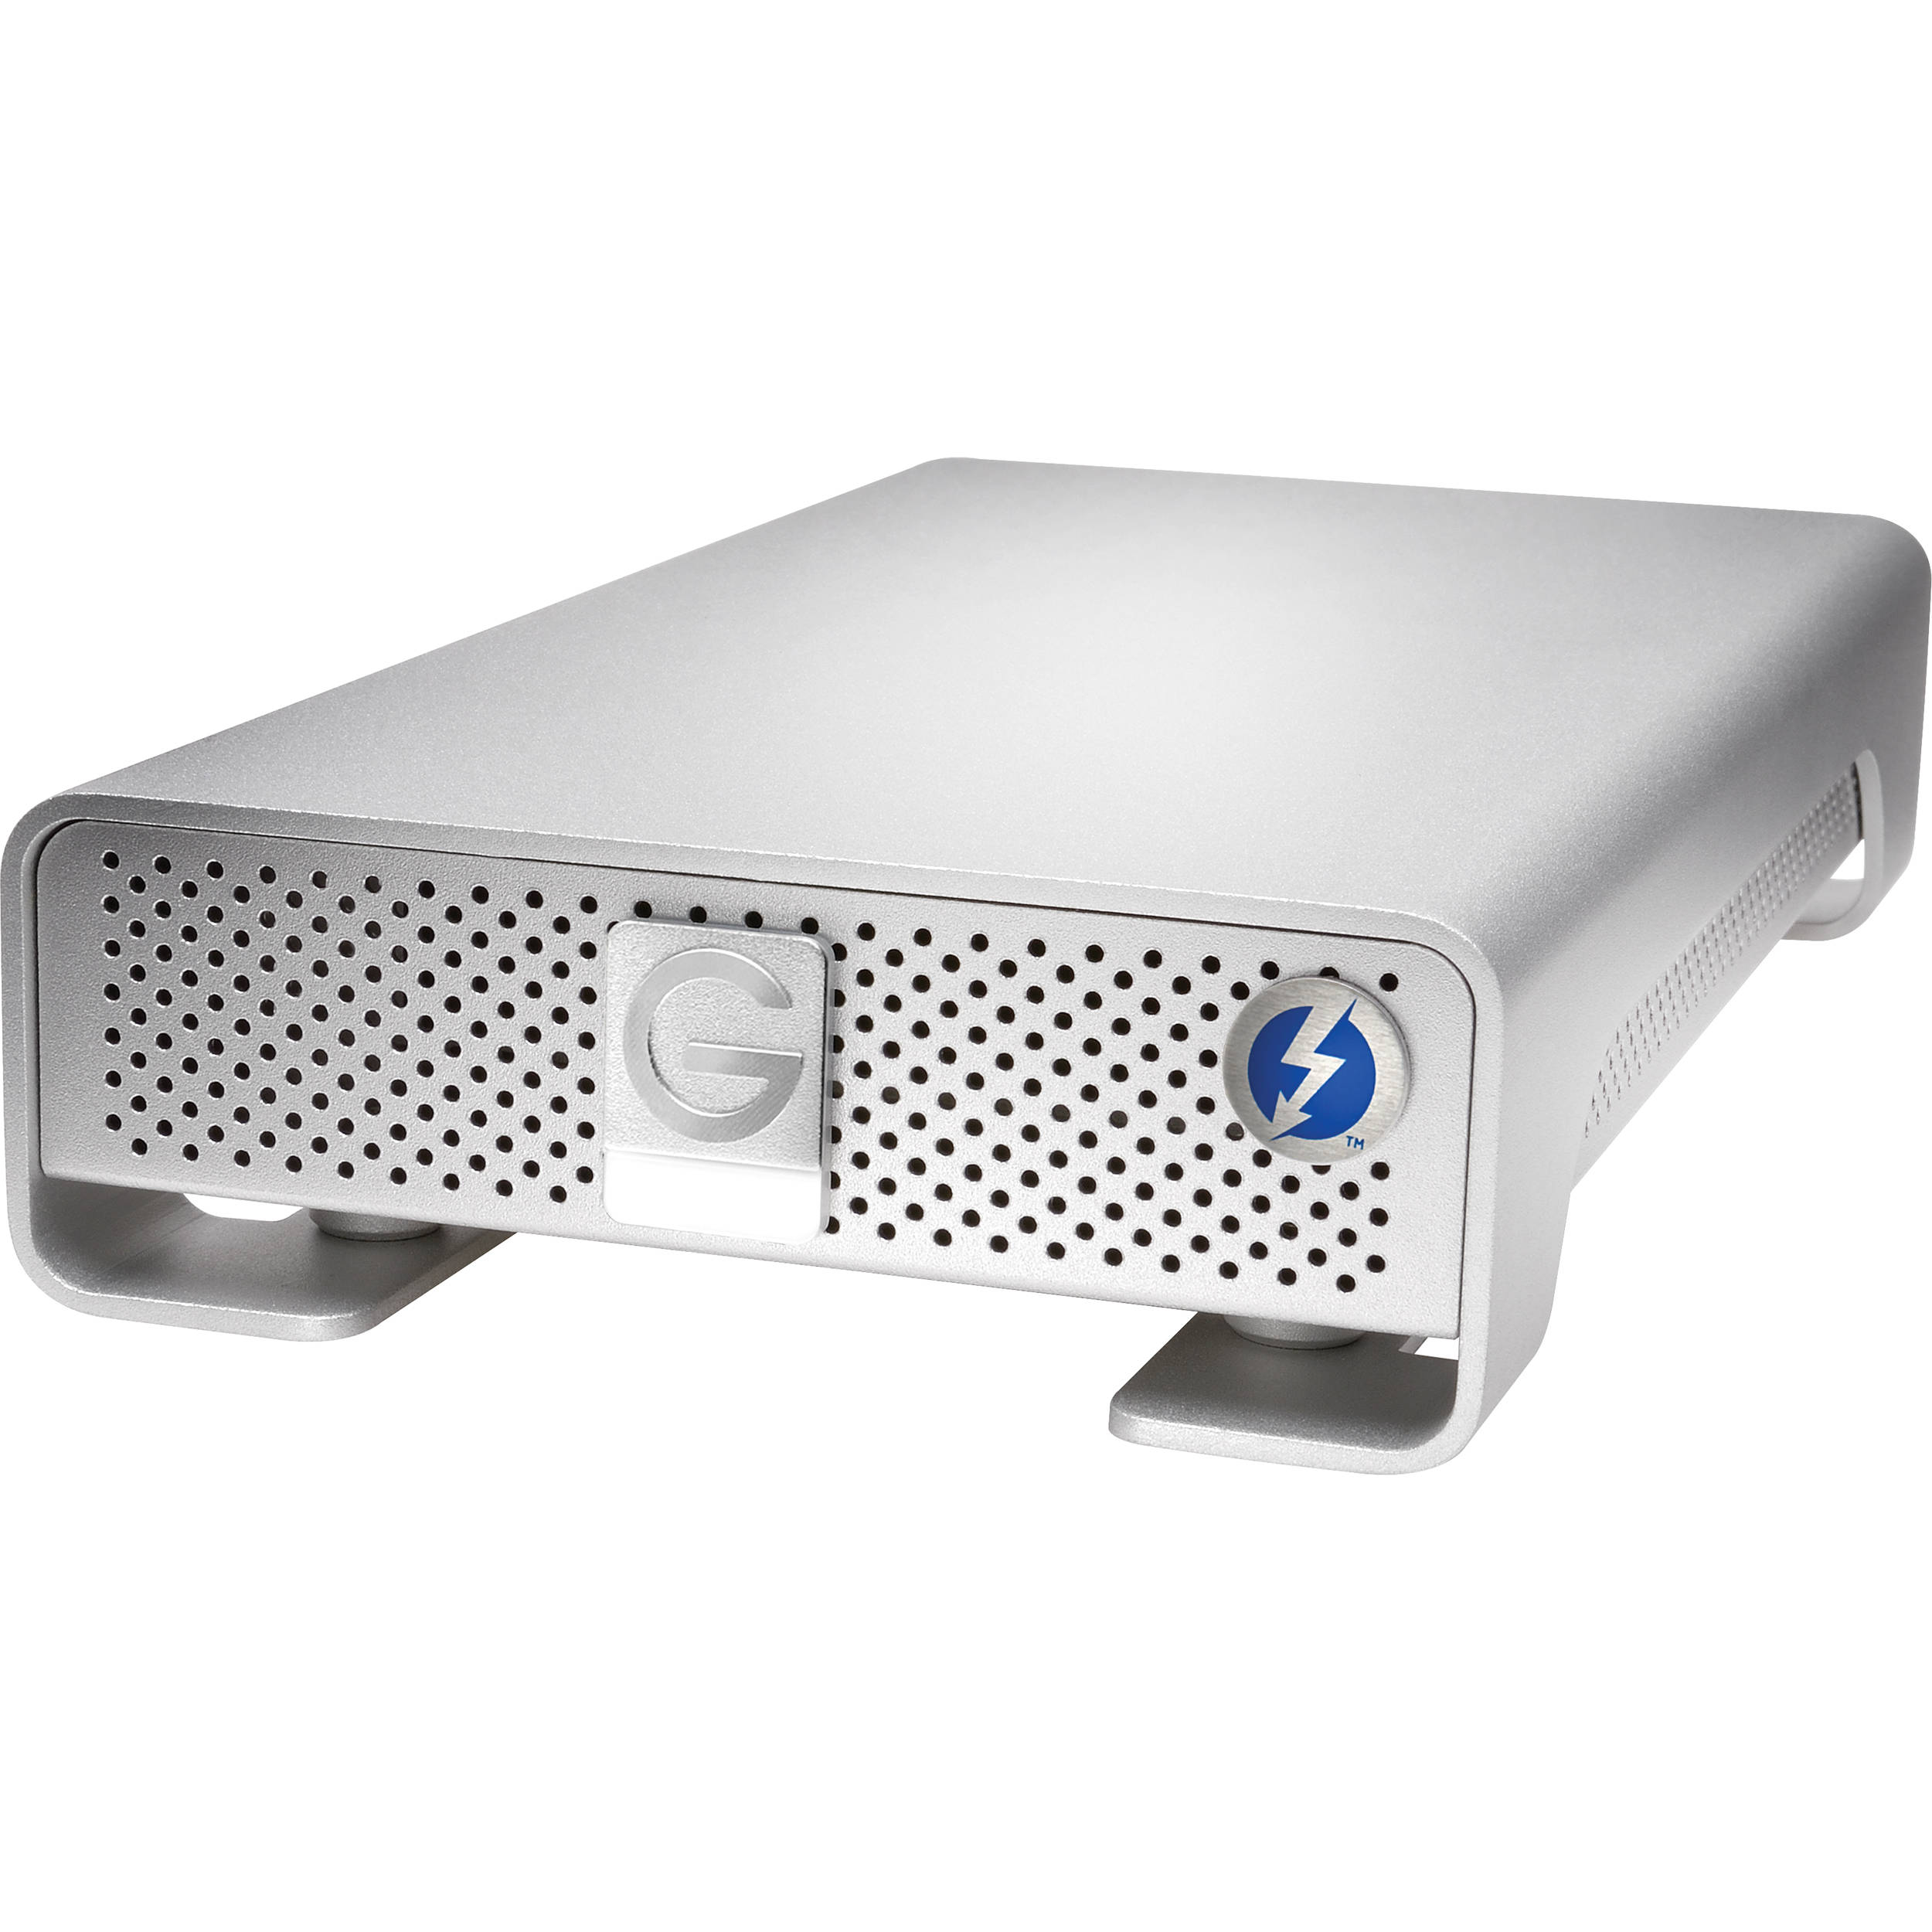 G Technology Bh Photo Video In The 360 It Has A 1gb39s Bidirectional Bus With 500mb S Read And 6tb Drive Thunderbolt